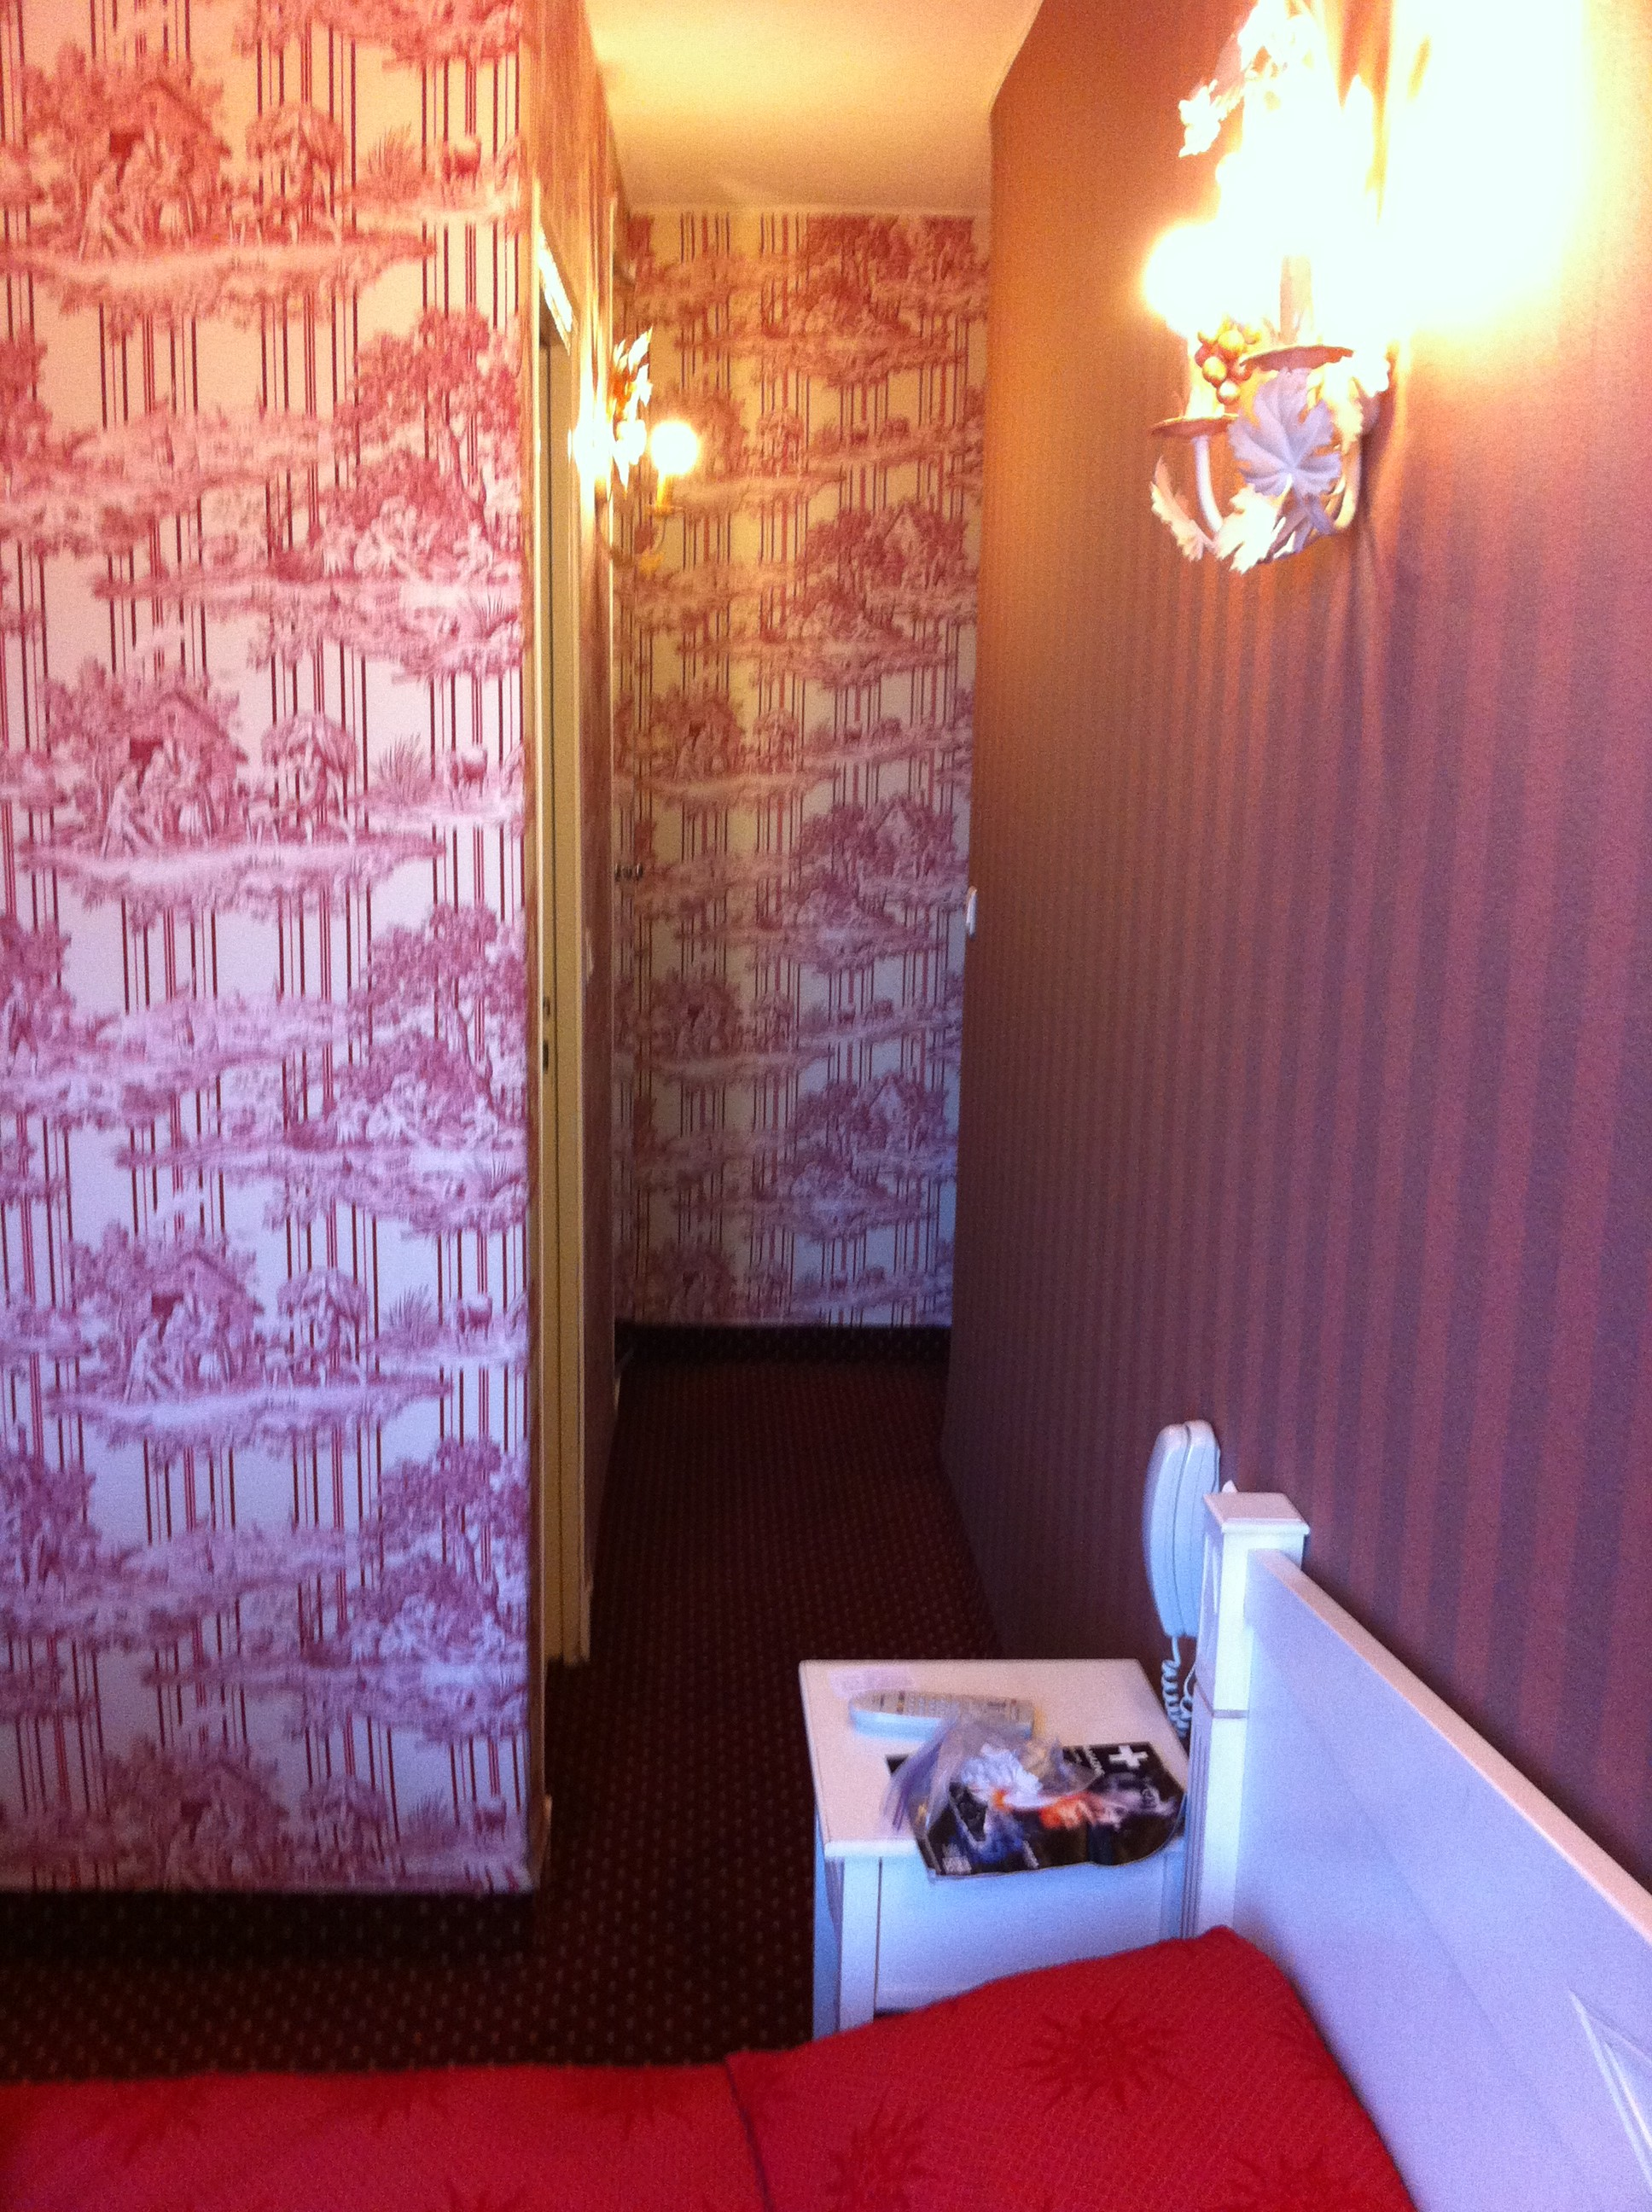 Interior shot of toile upholstered walls inside Paris hotel room